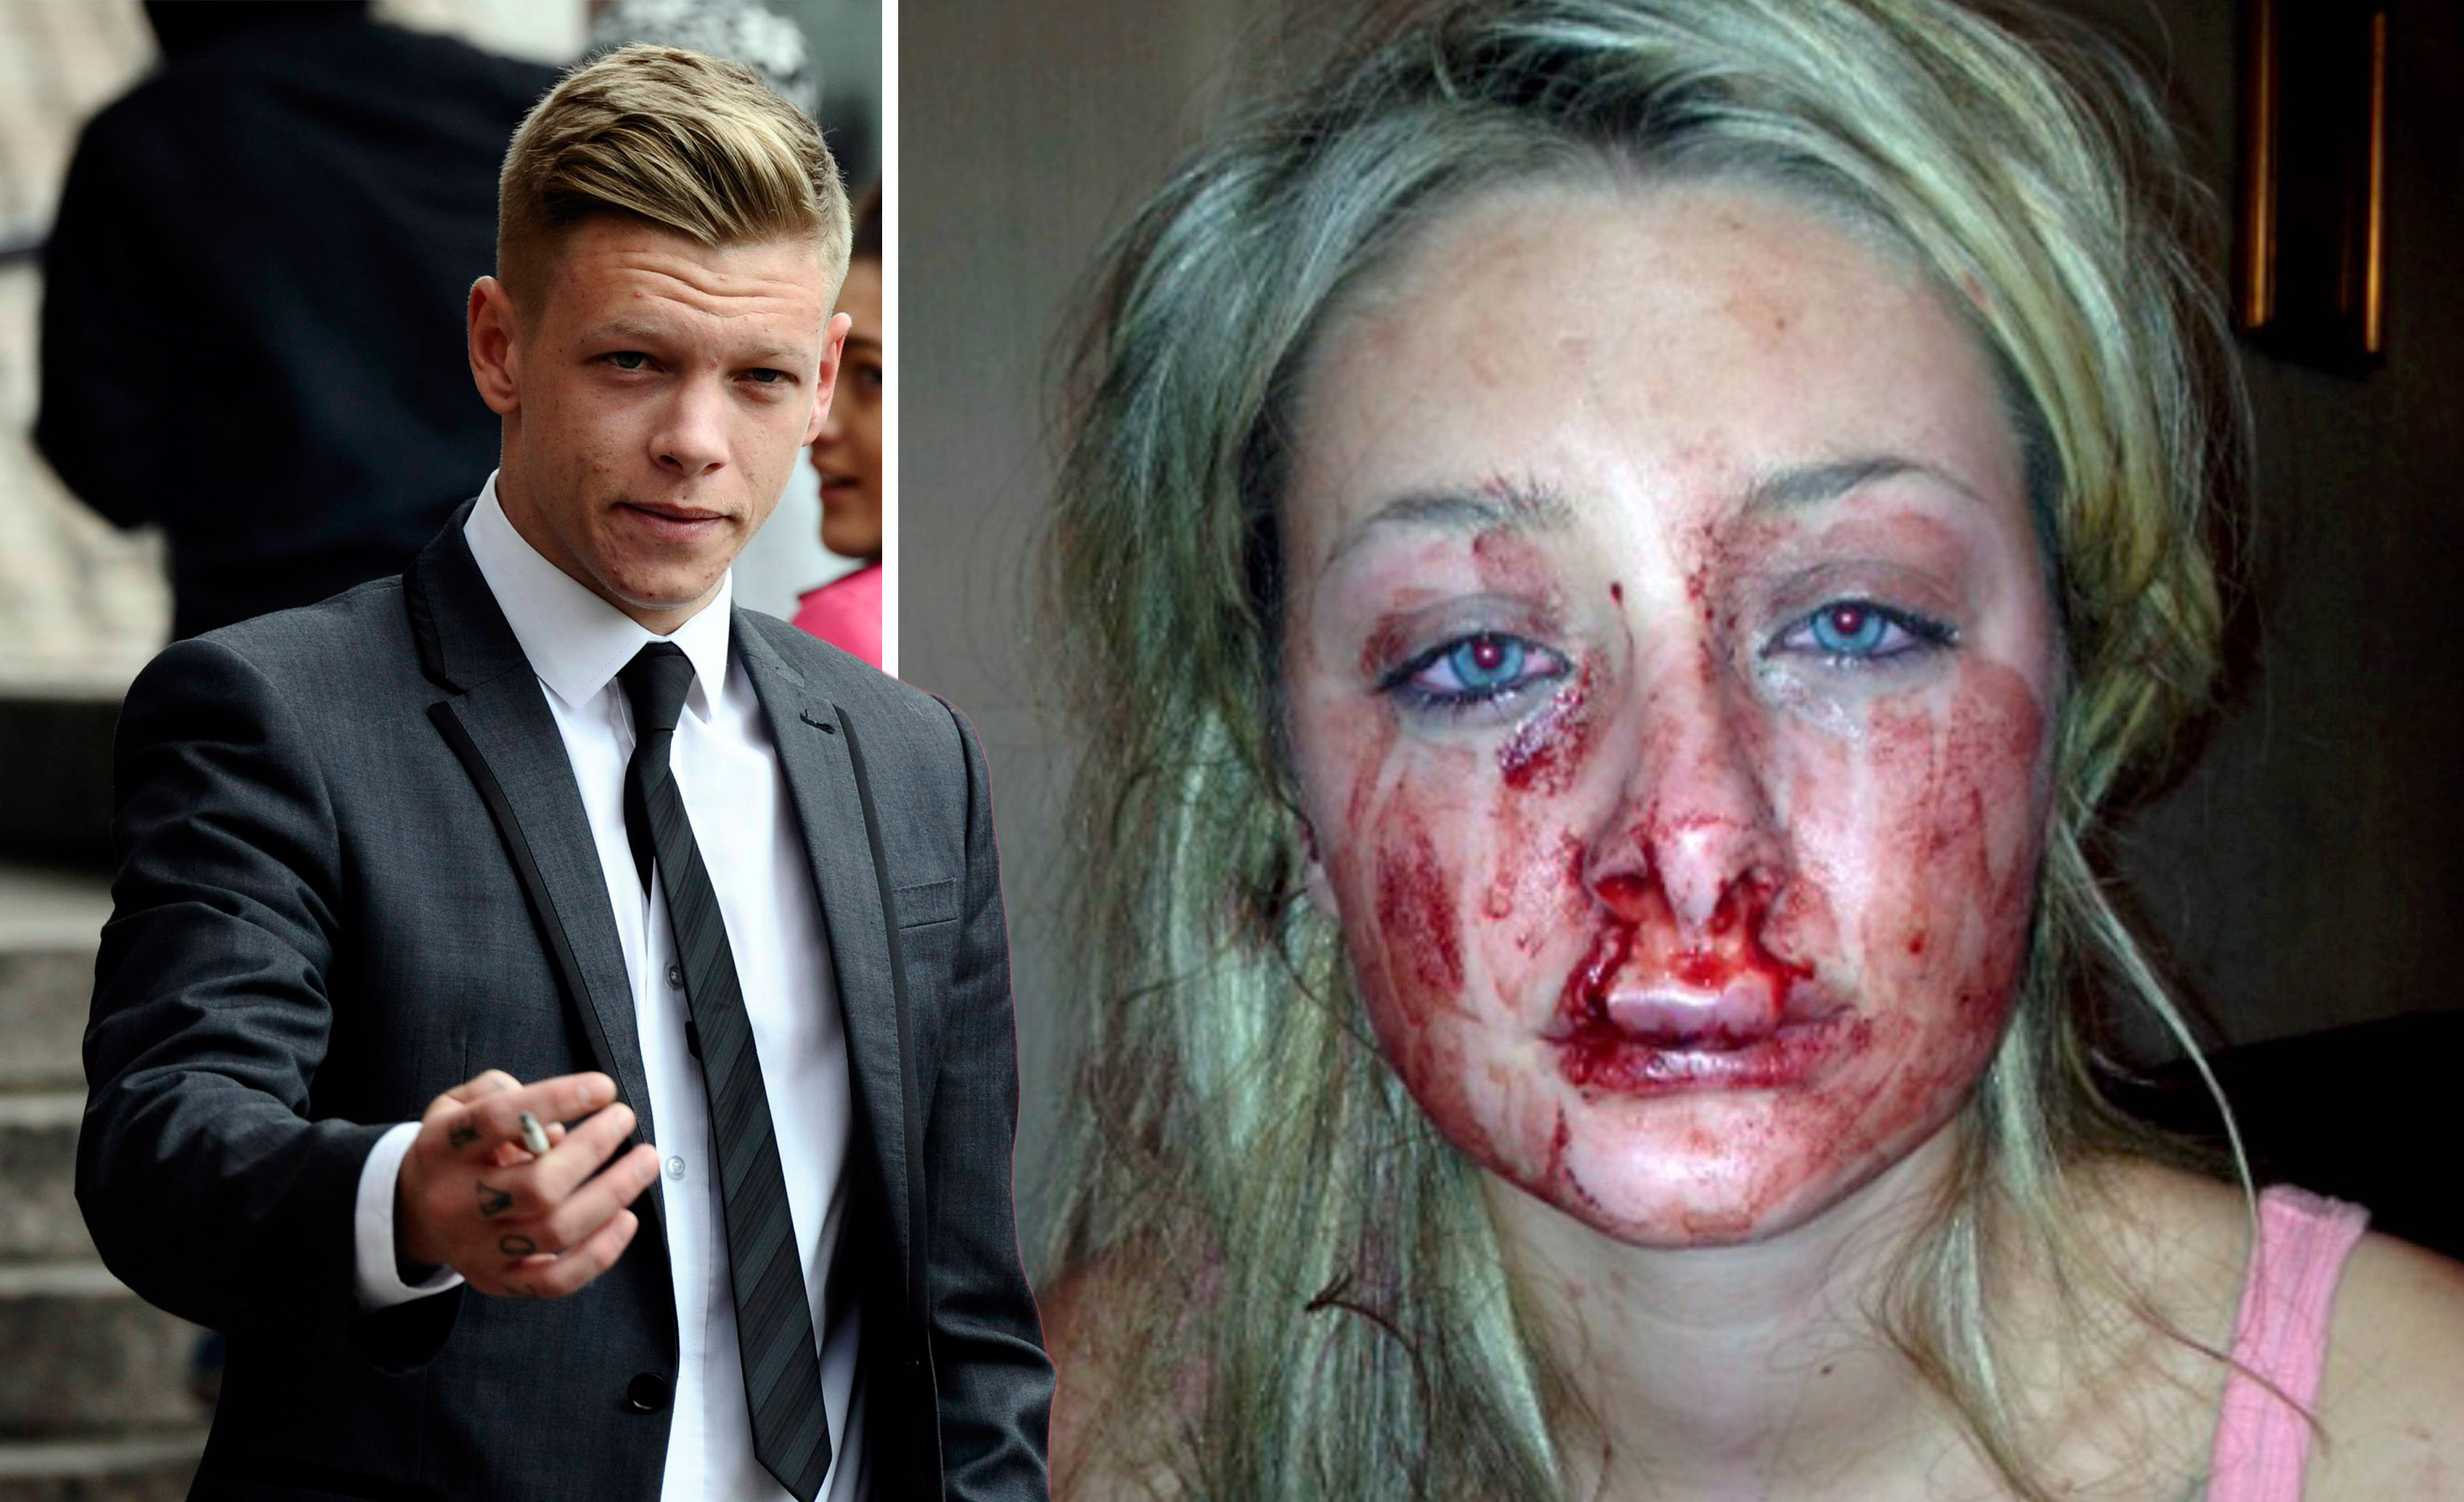 Domestic violence victim left disfigured after jealous ex bit her is entering beauty pageant